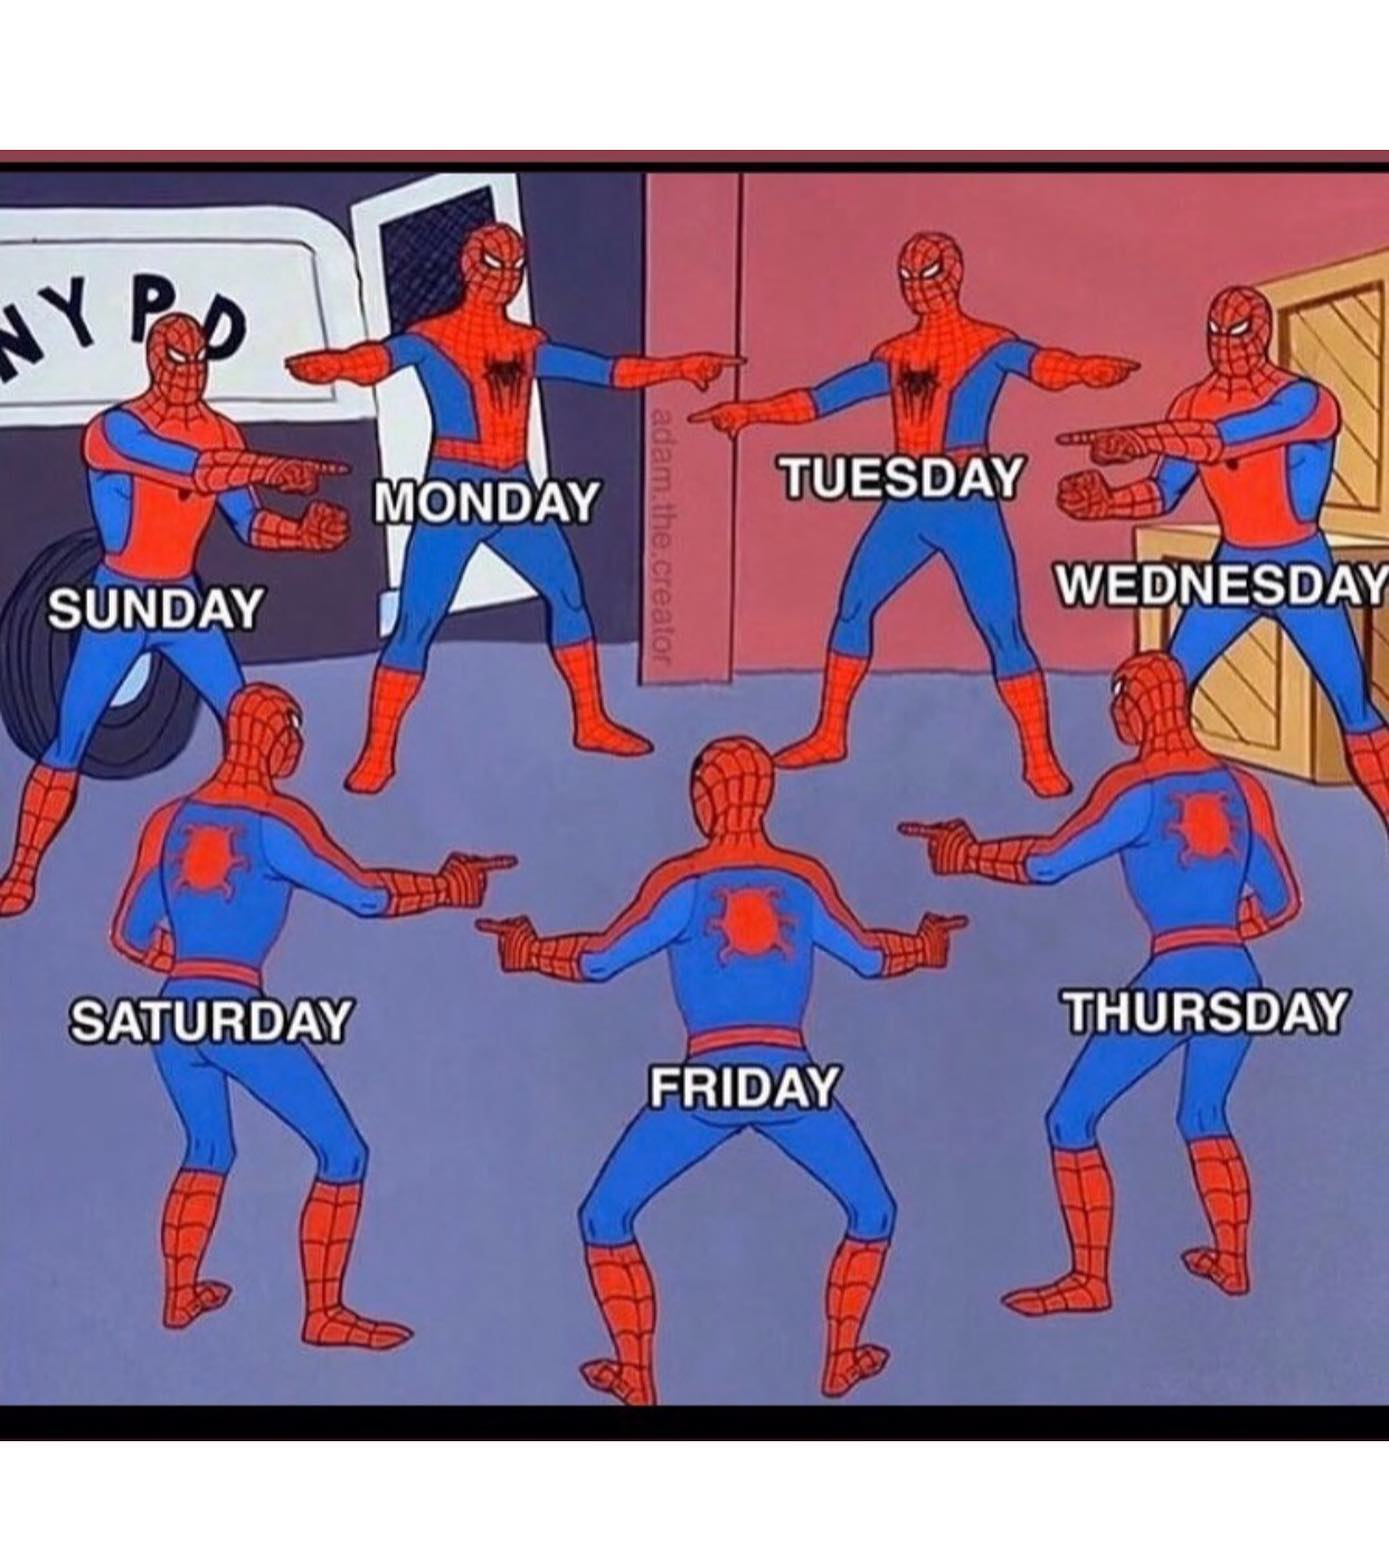 monday, tuesday, wednesday, thursday, friday, saturday, sunday, all spidermans